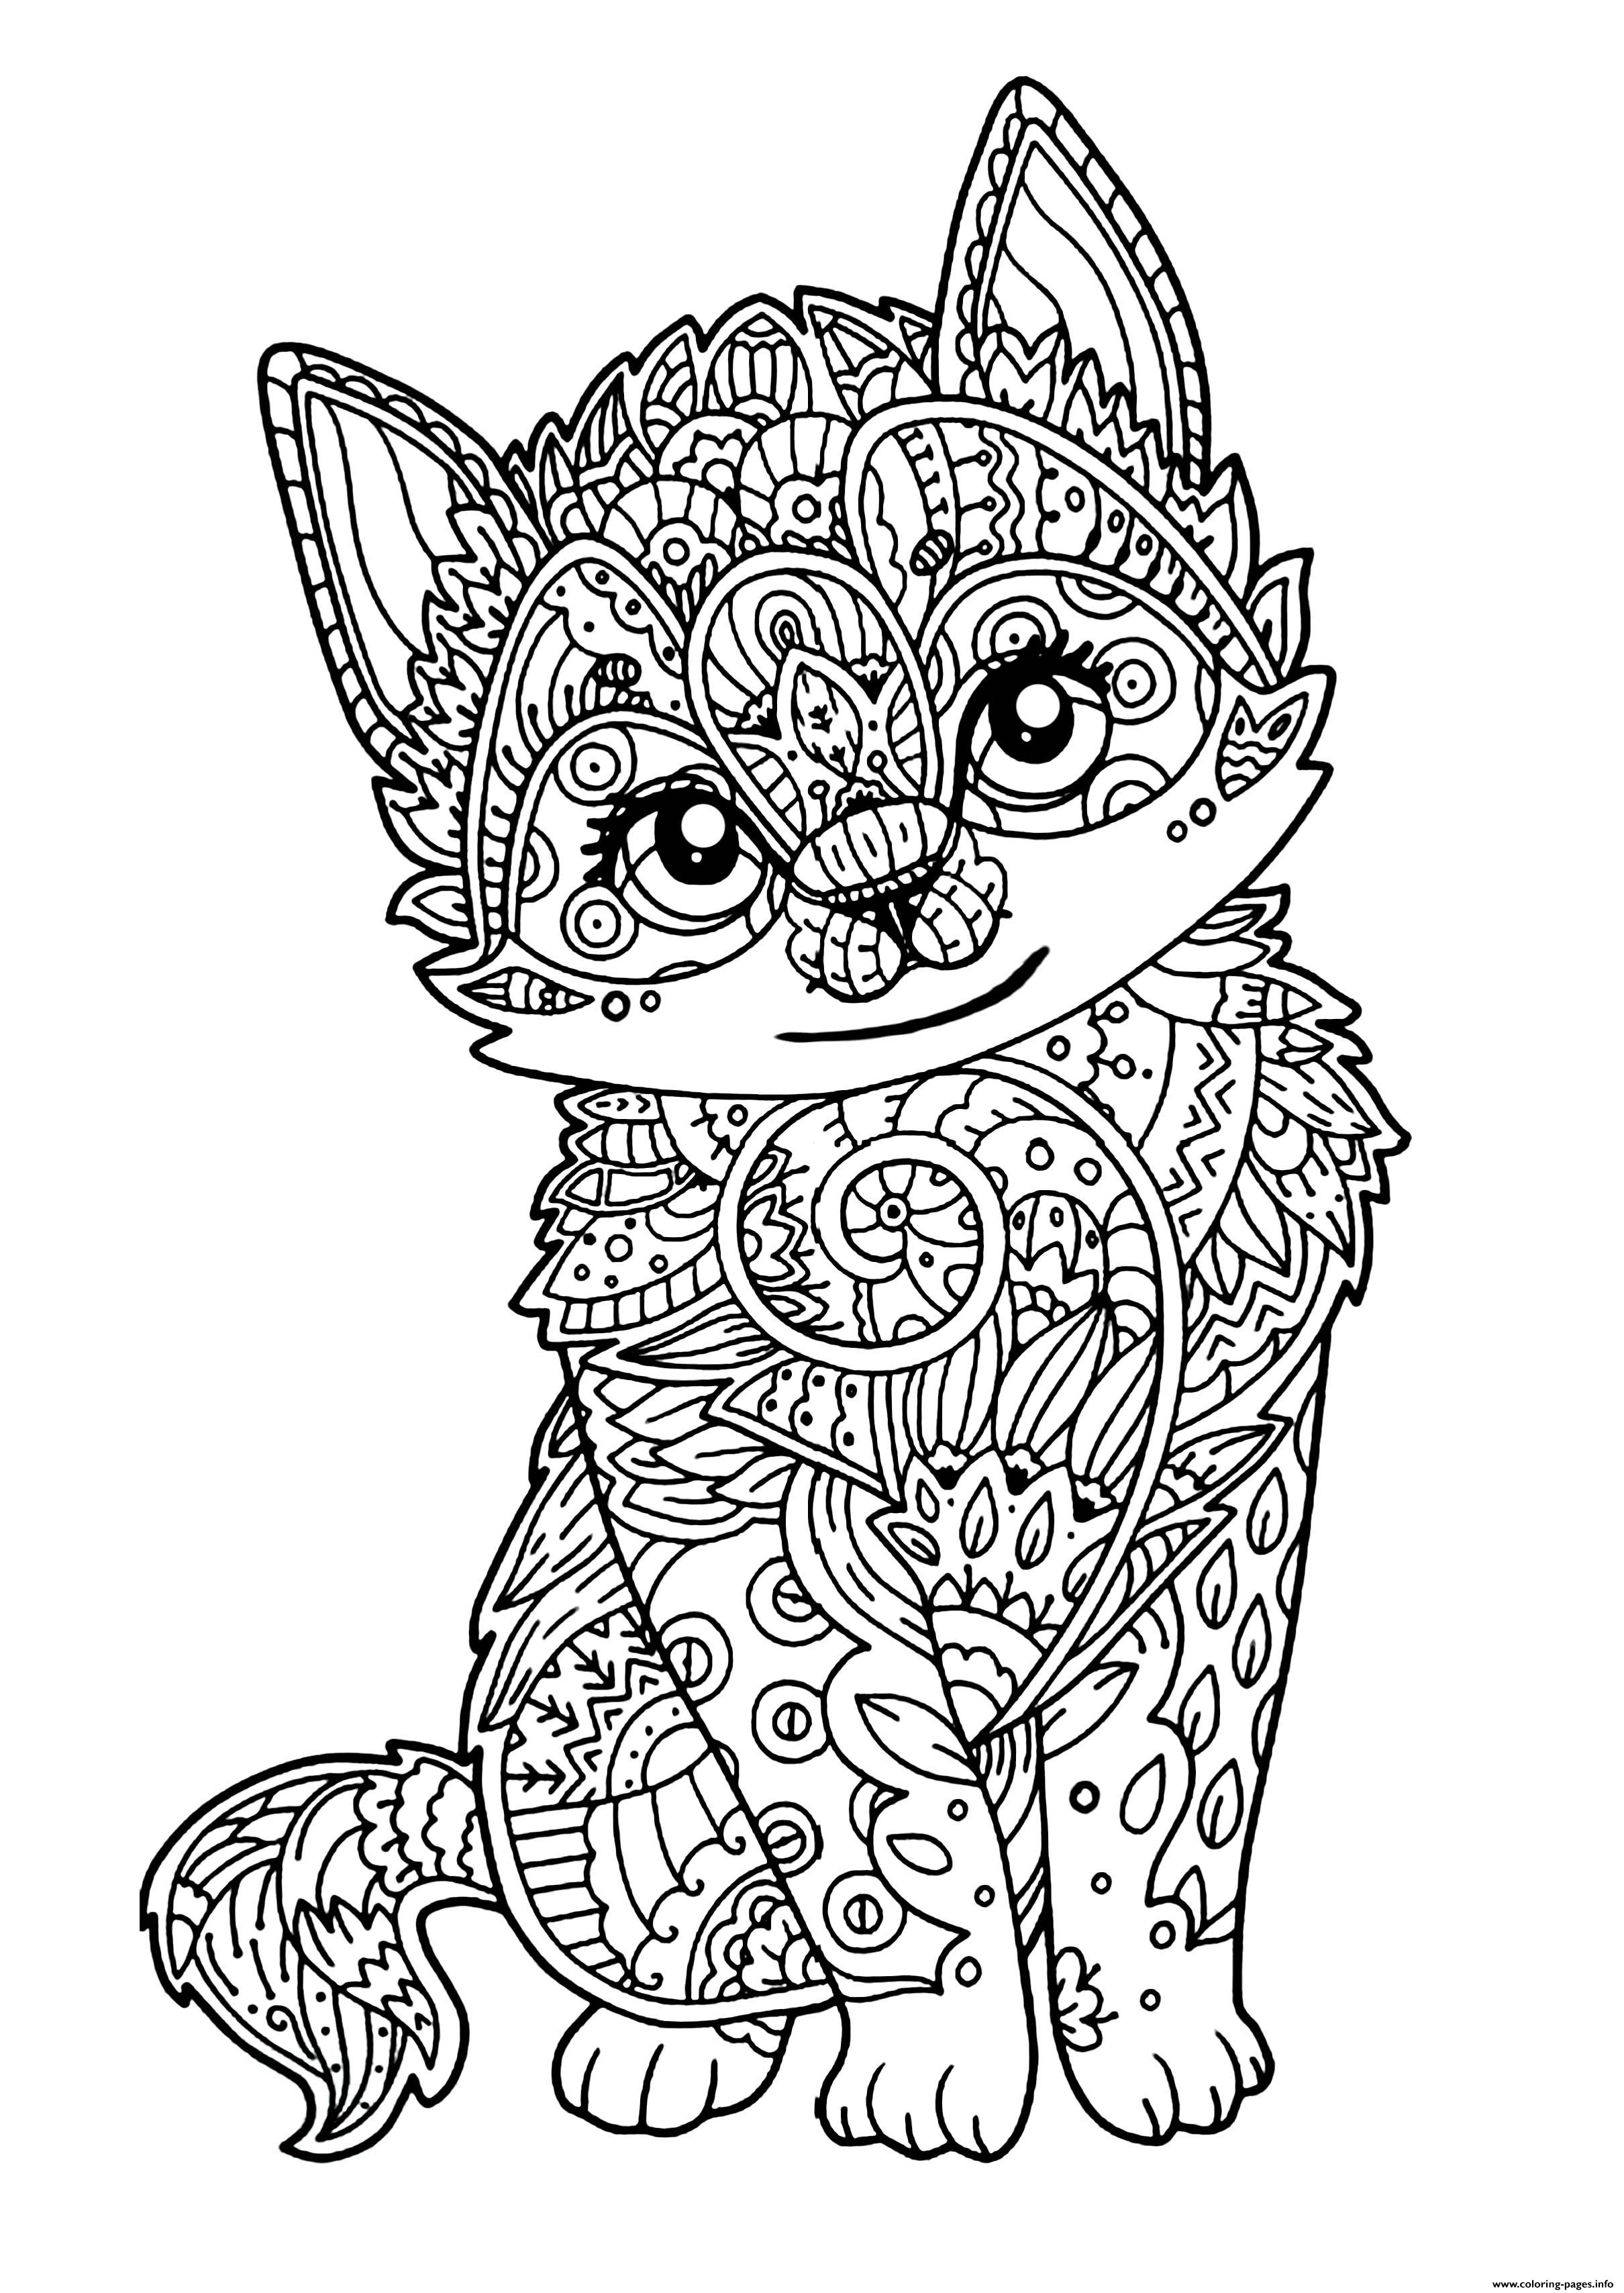 2420x3416 New Free Printable Cat Coloring Pages For Kids